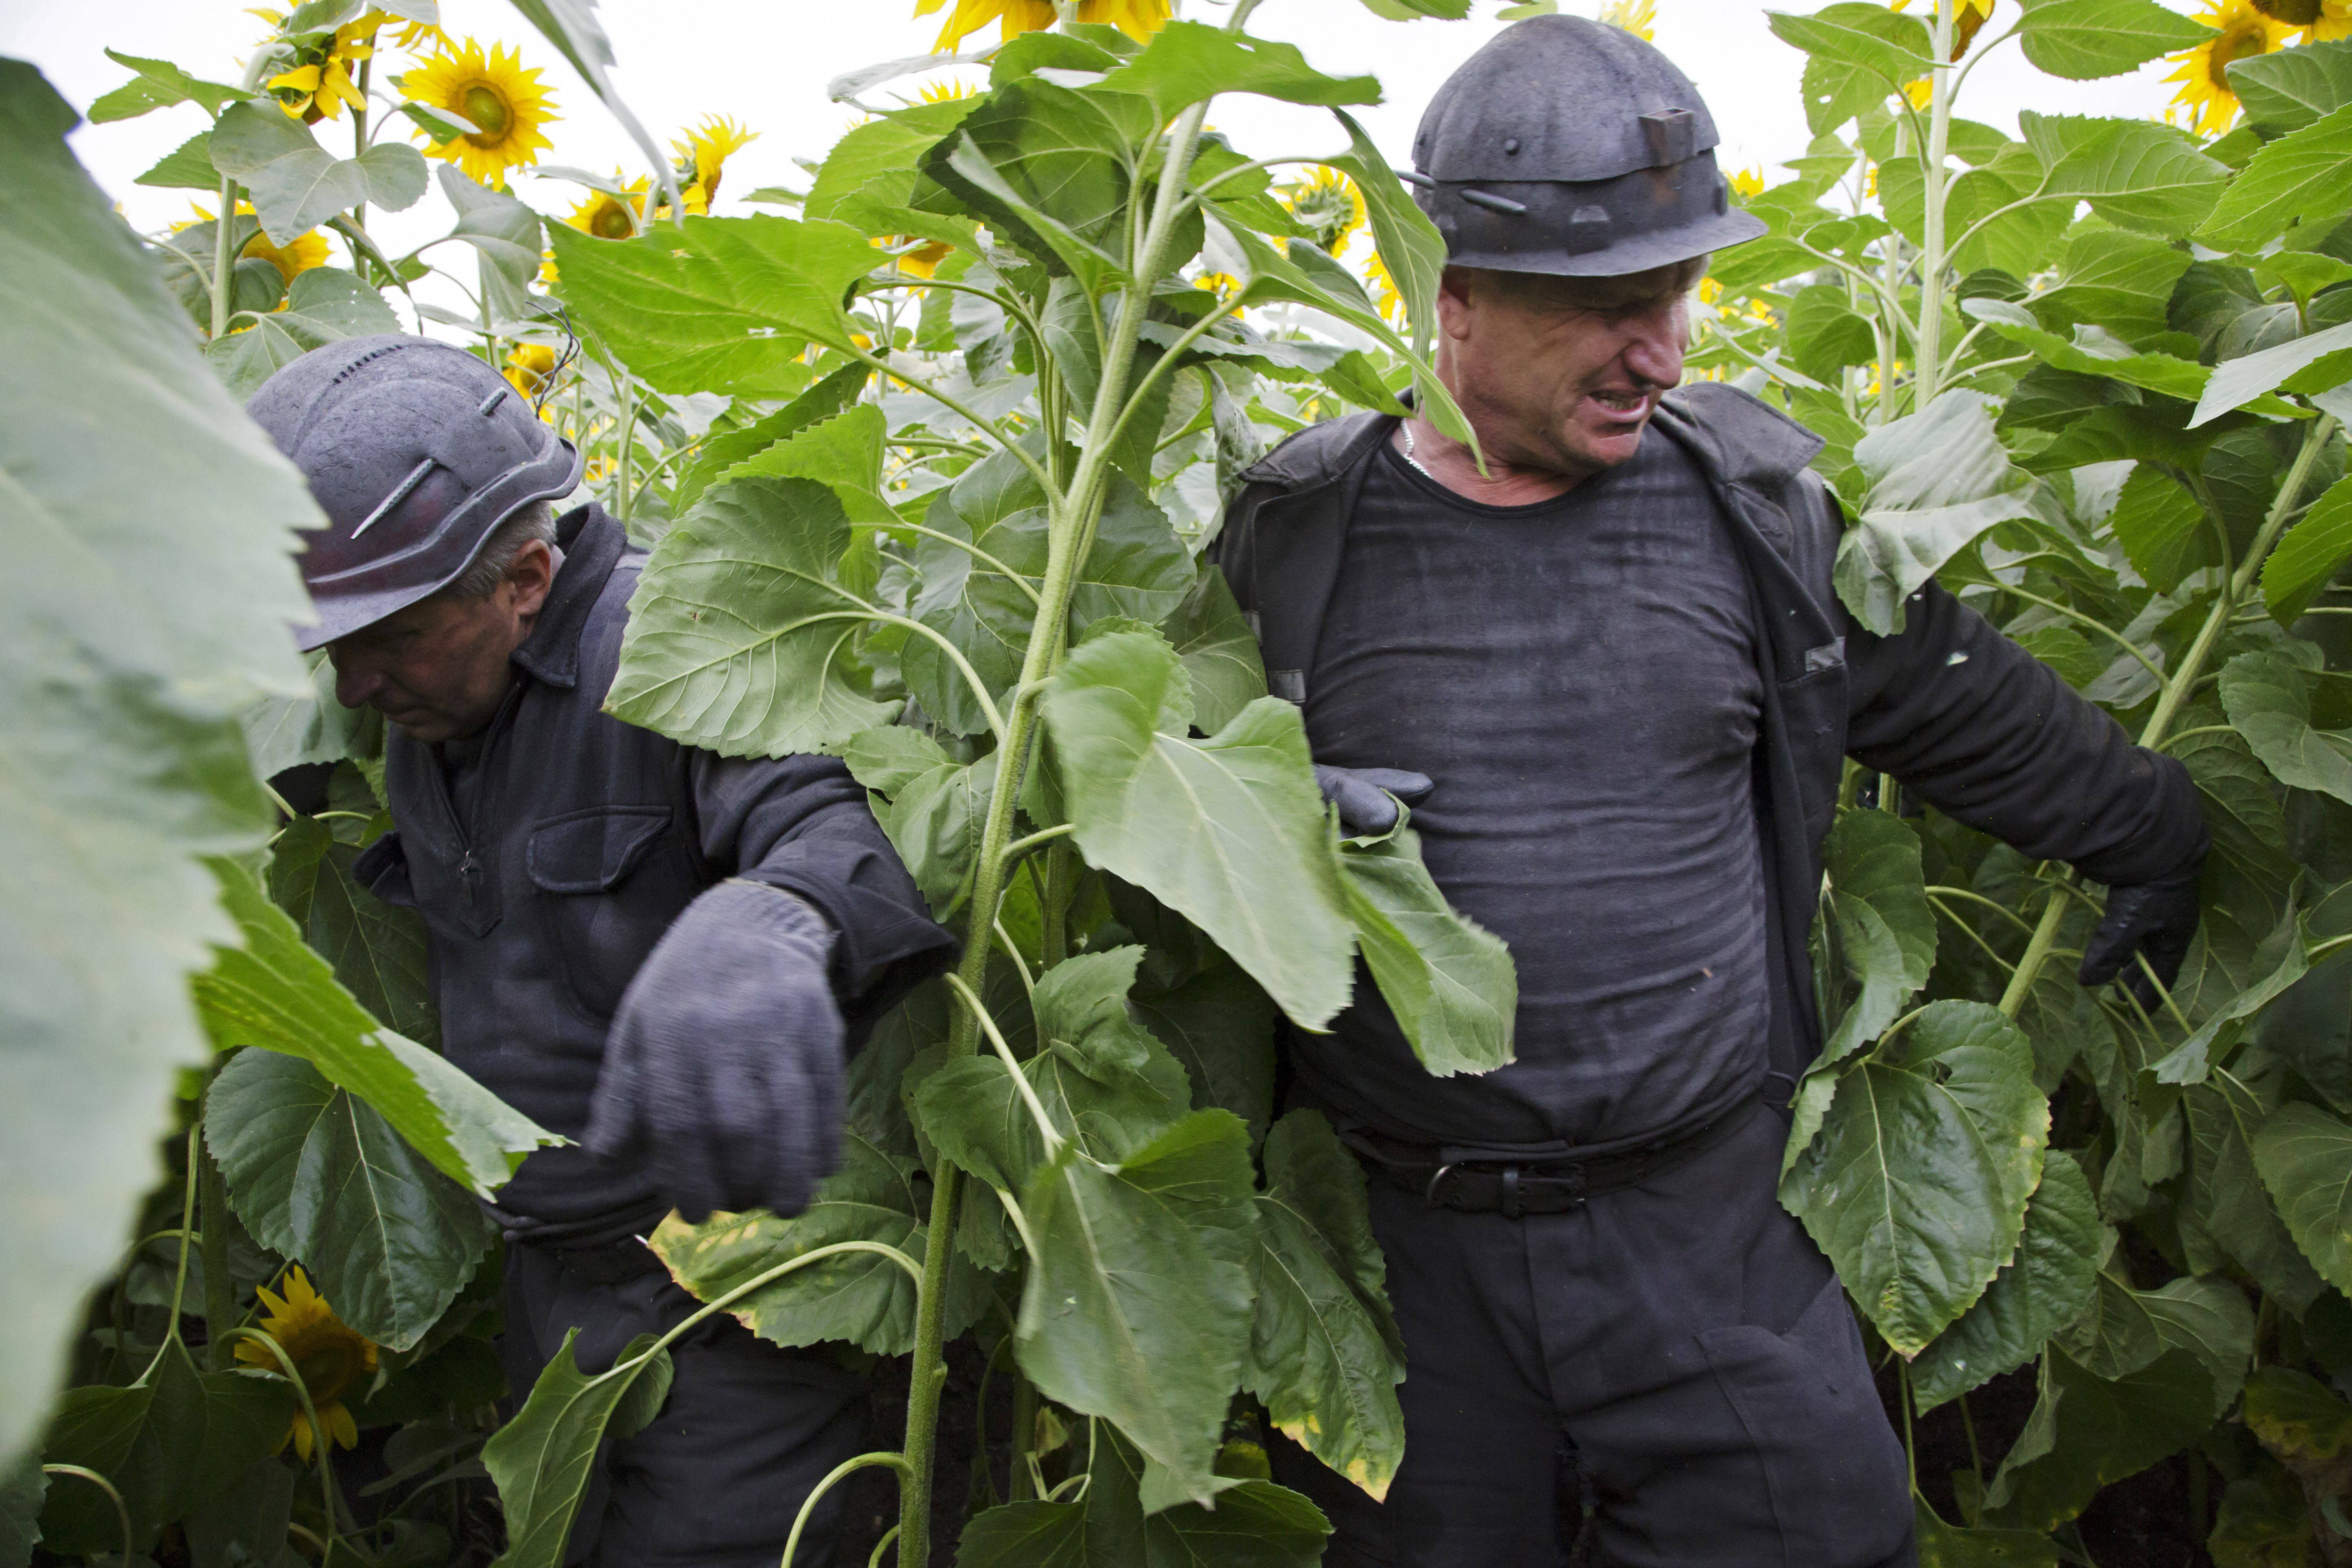 Ukrainian coal miners wade through a field of sunflowers as they search the site .